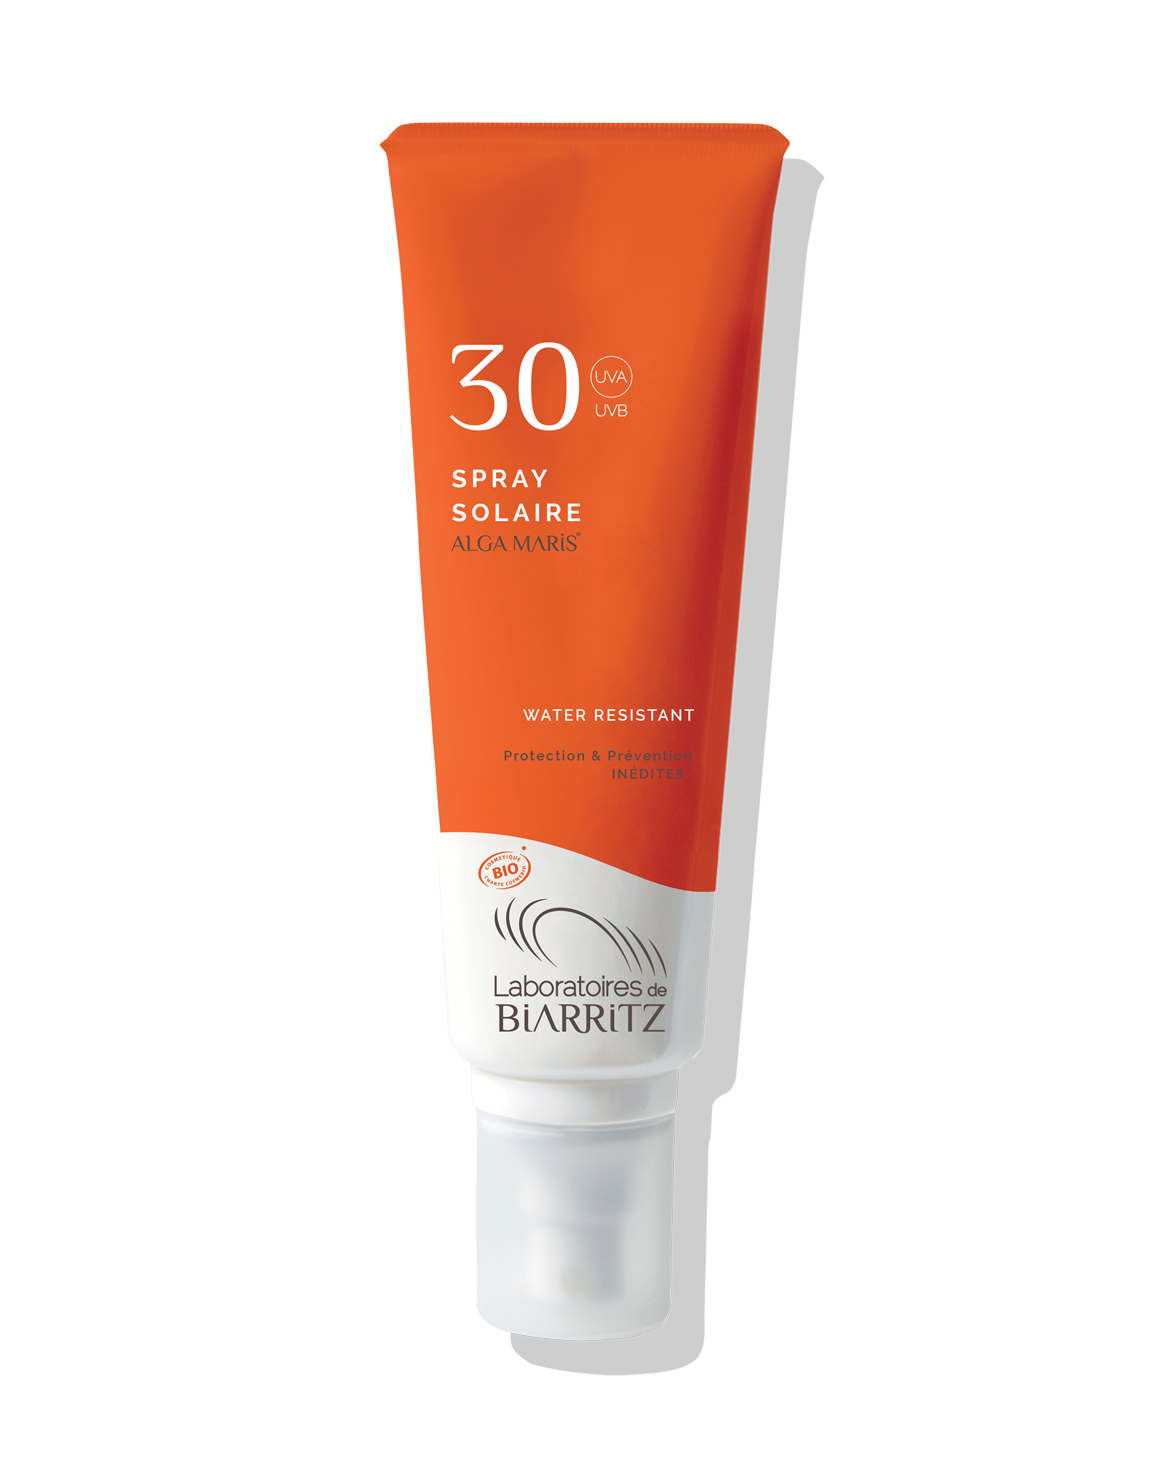 Spray Solare SPF 30 Laboratoires de Biarritz 125ml